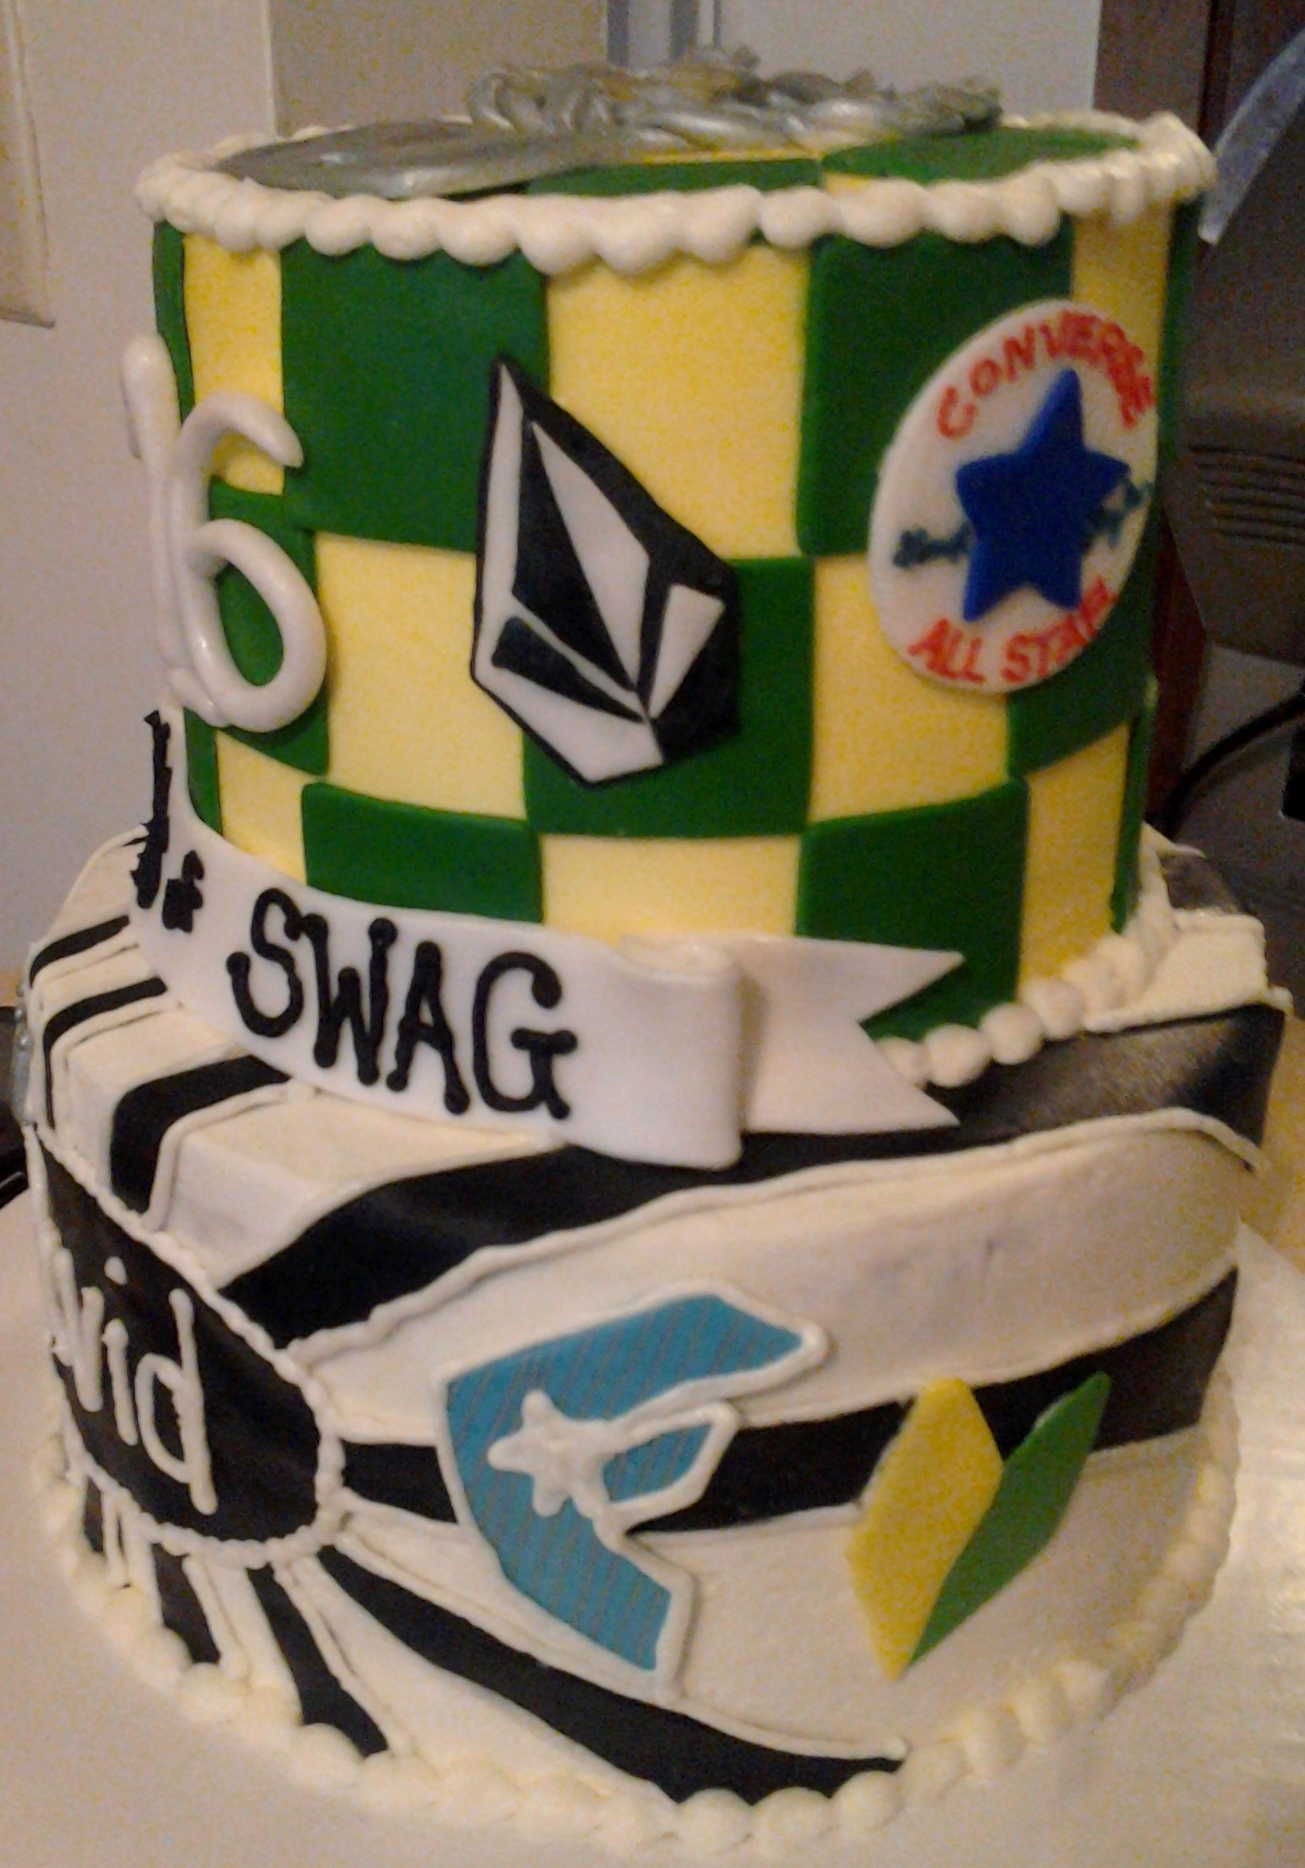 Swag 16 Year Old Boys Birthday Cake